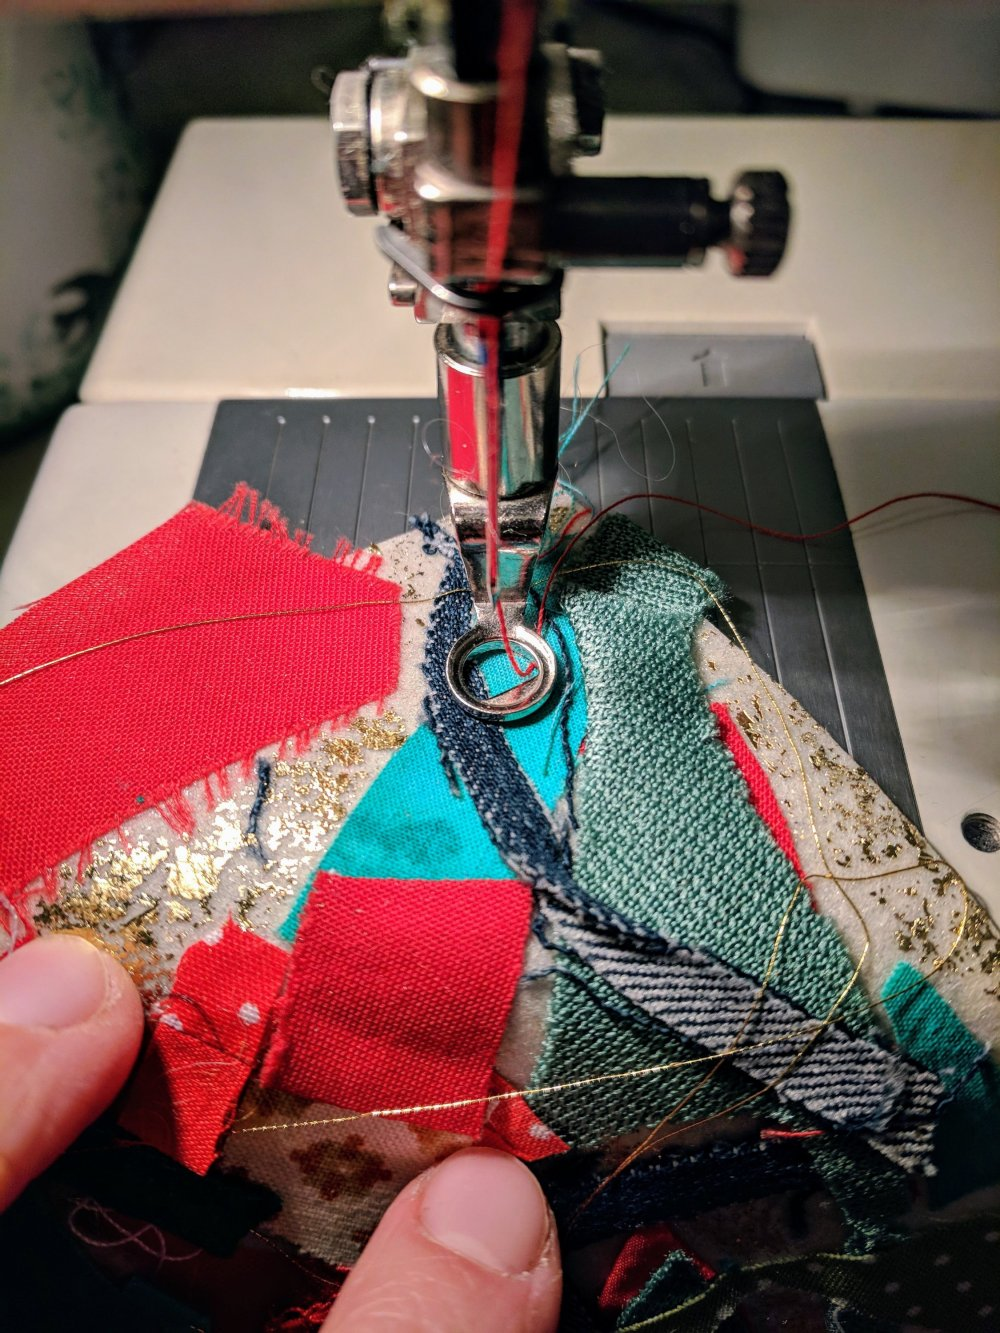 Ready to be sewn with embroidery foot at the sewing machine